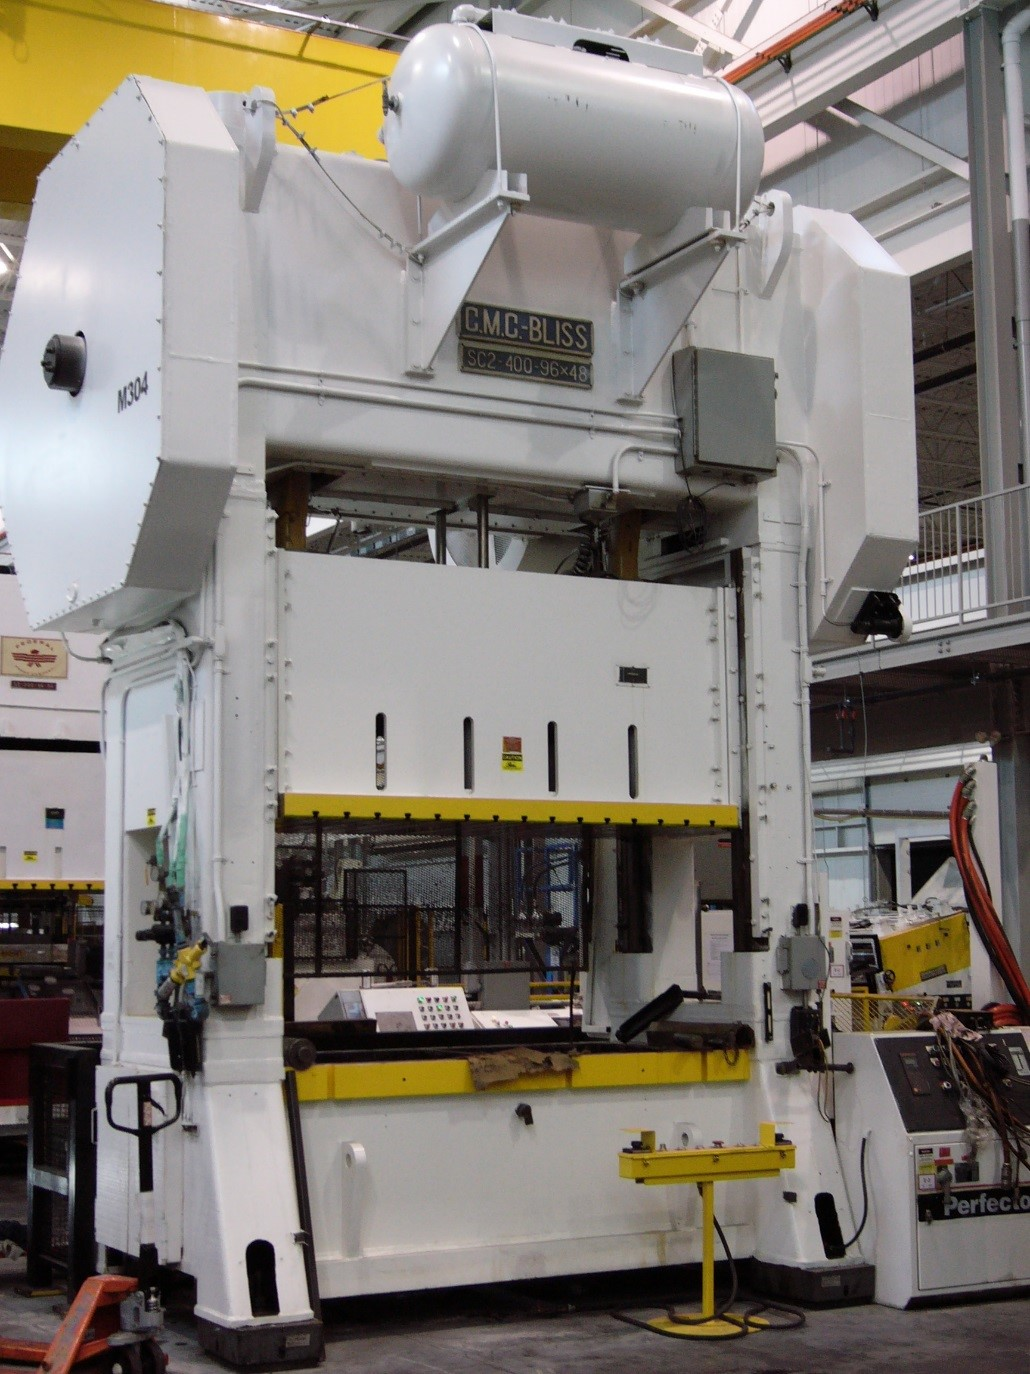 400 To Bliss SC2-400-96-48 Straight Side Press